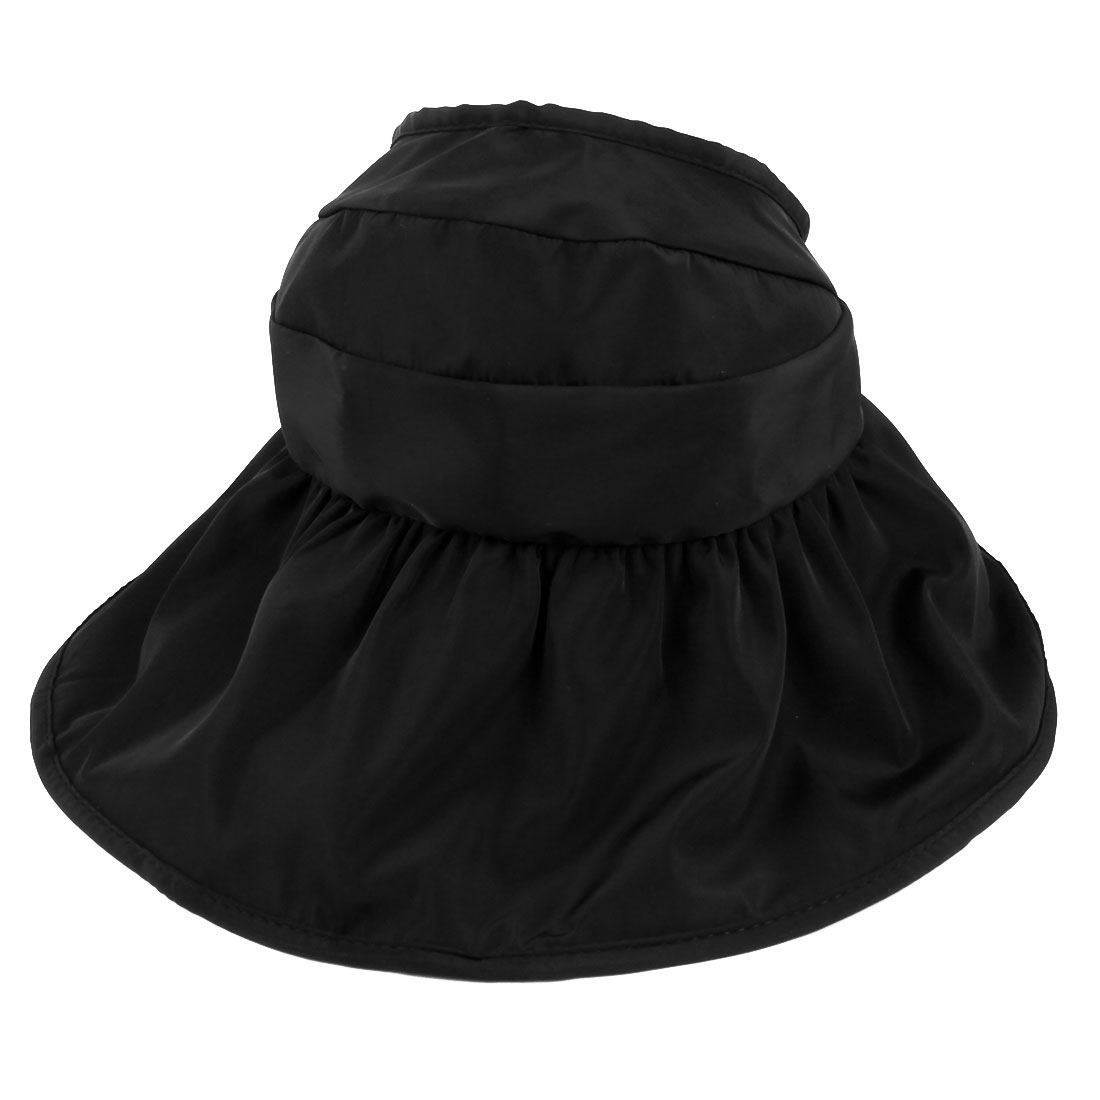 Woman Summer Outdoor Roll Up Wide Floppy Brim Foldable Visor Cap Sun Protector Hat Black